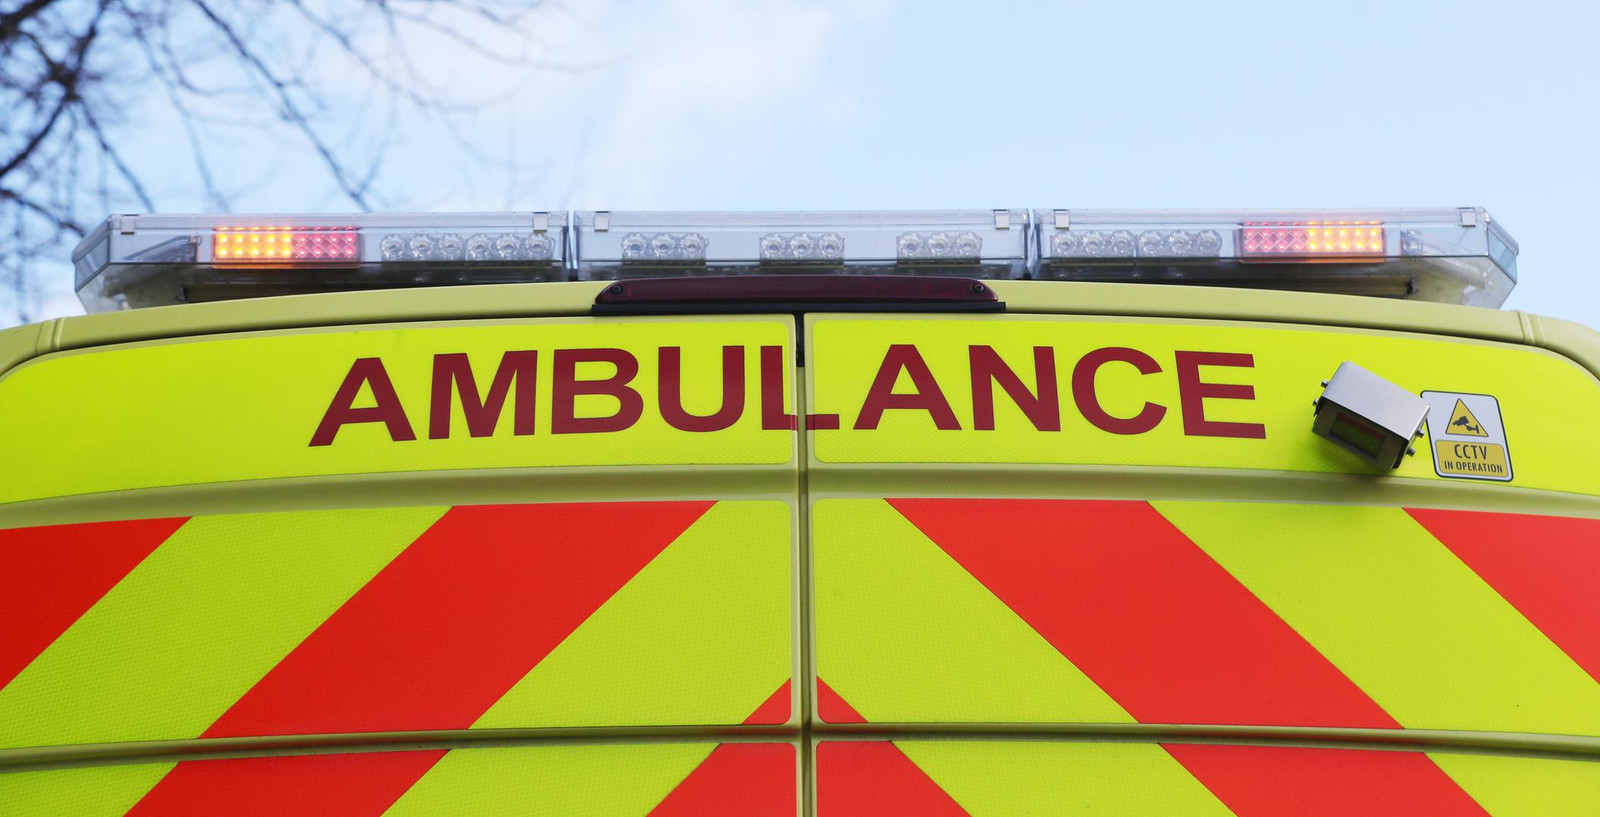 Emergency Services Stock. A stock picture of an Ambulance badge logo in Dublin. PRESS ASSOCIATION Photo. Picture date: Wednesday January 16, 2019. Photo credit should read: Niall Carson/PA Wire URN:40660692 + PHOTO NEWS / PICTURES NOT INCLUDED IN THE CONTRACTS  ! only BELGIUM !